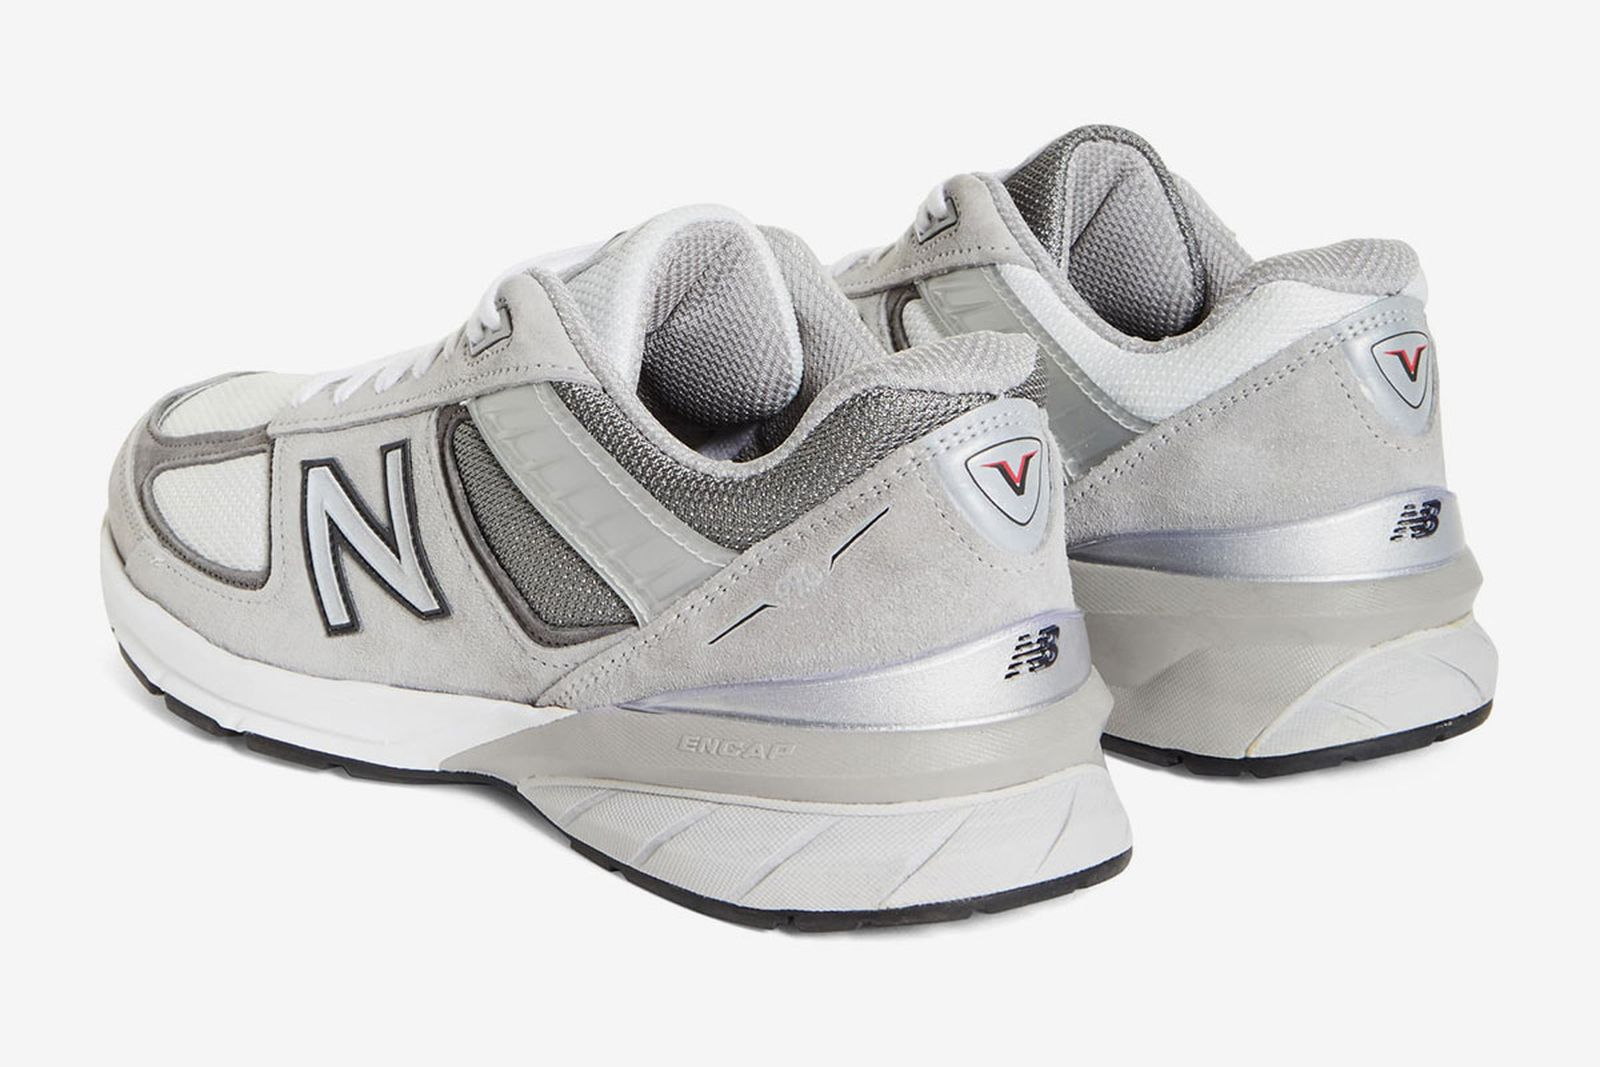 beams-new-balance-990v5-release-date-price-04